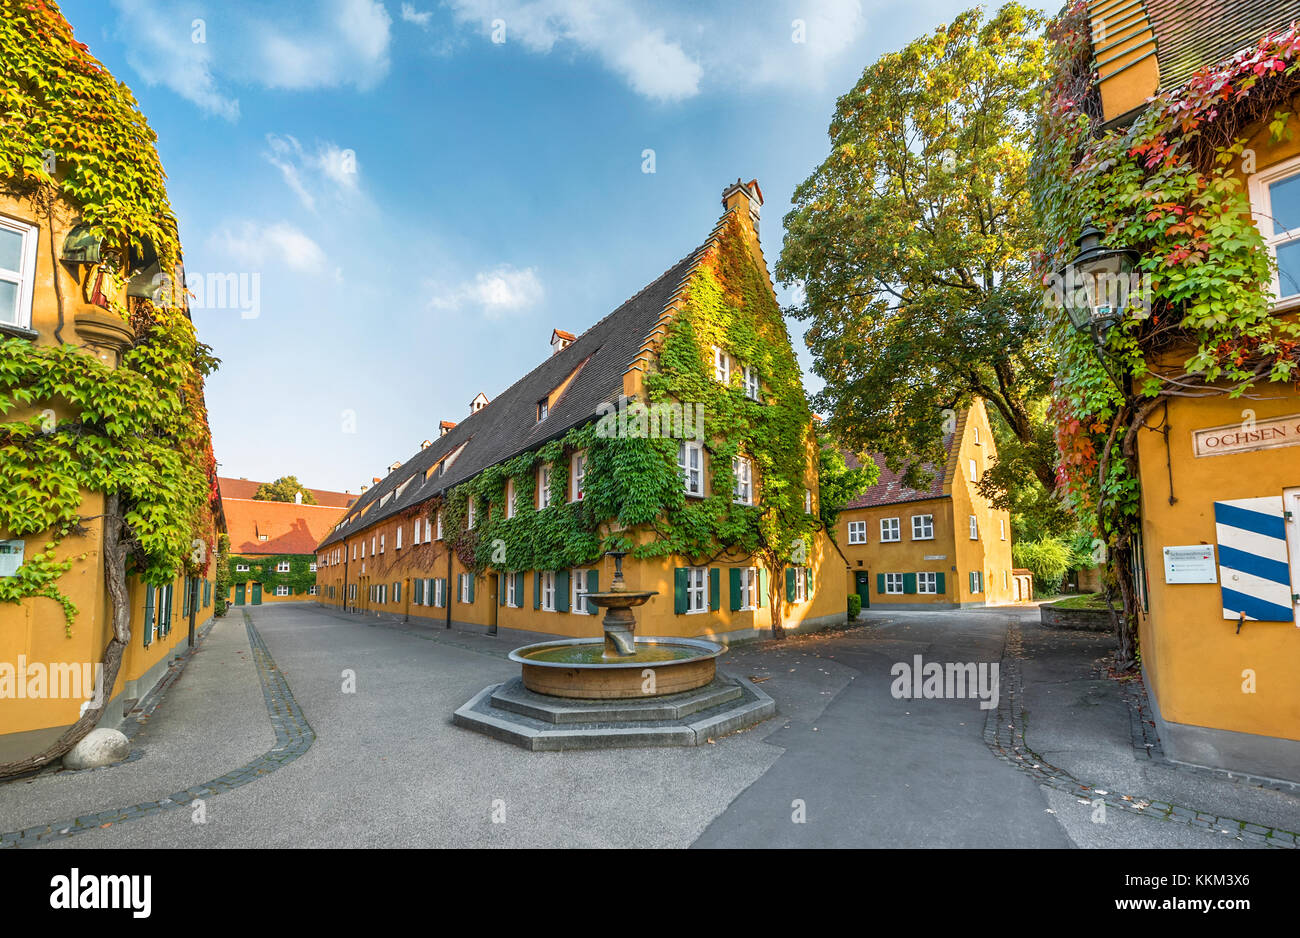 At the streets of the unique Fuggerei social living complex - Stock Image